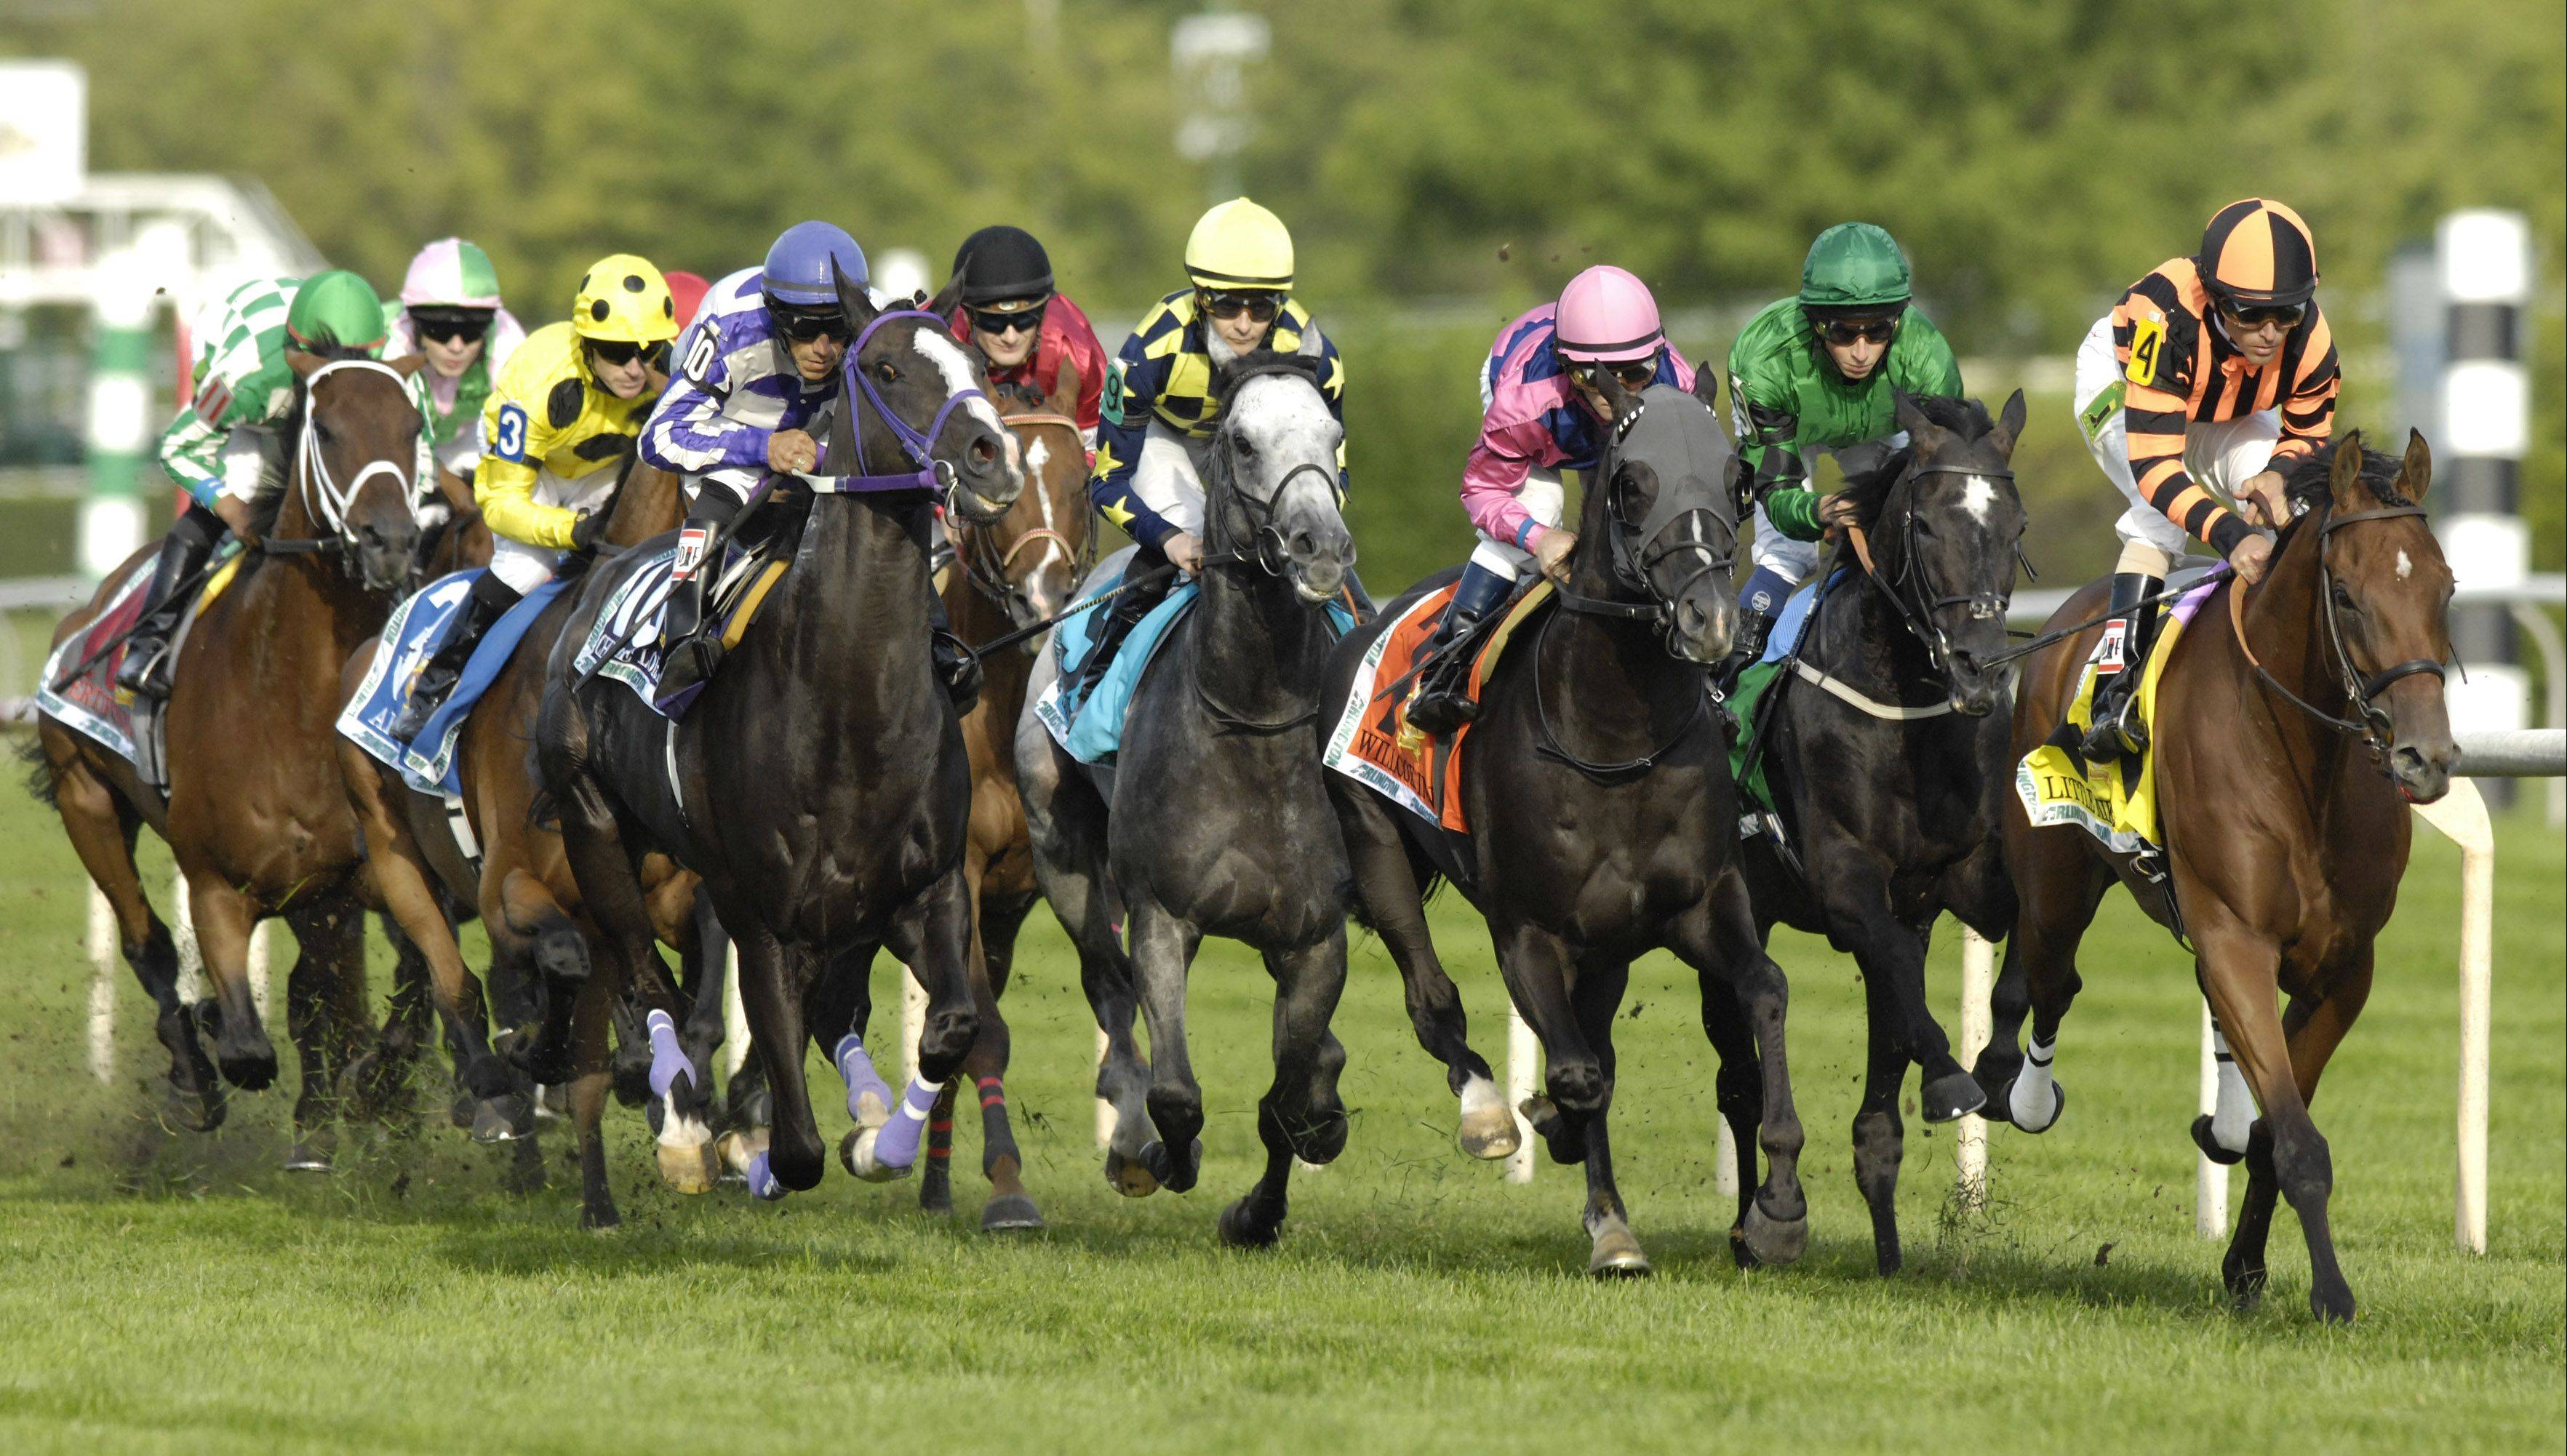 Arlington International Racecourse is running out of time to get a state law extended and save its summer racing season from cuts.